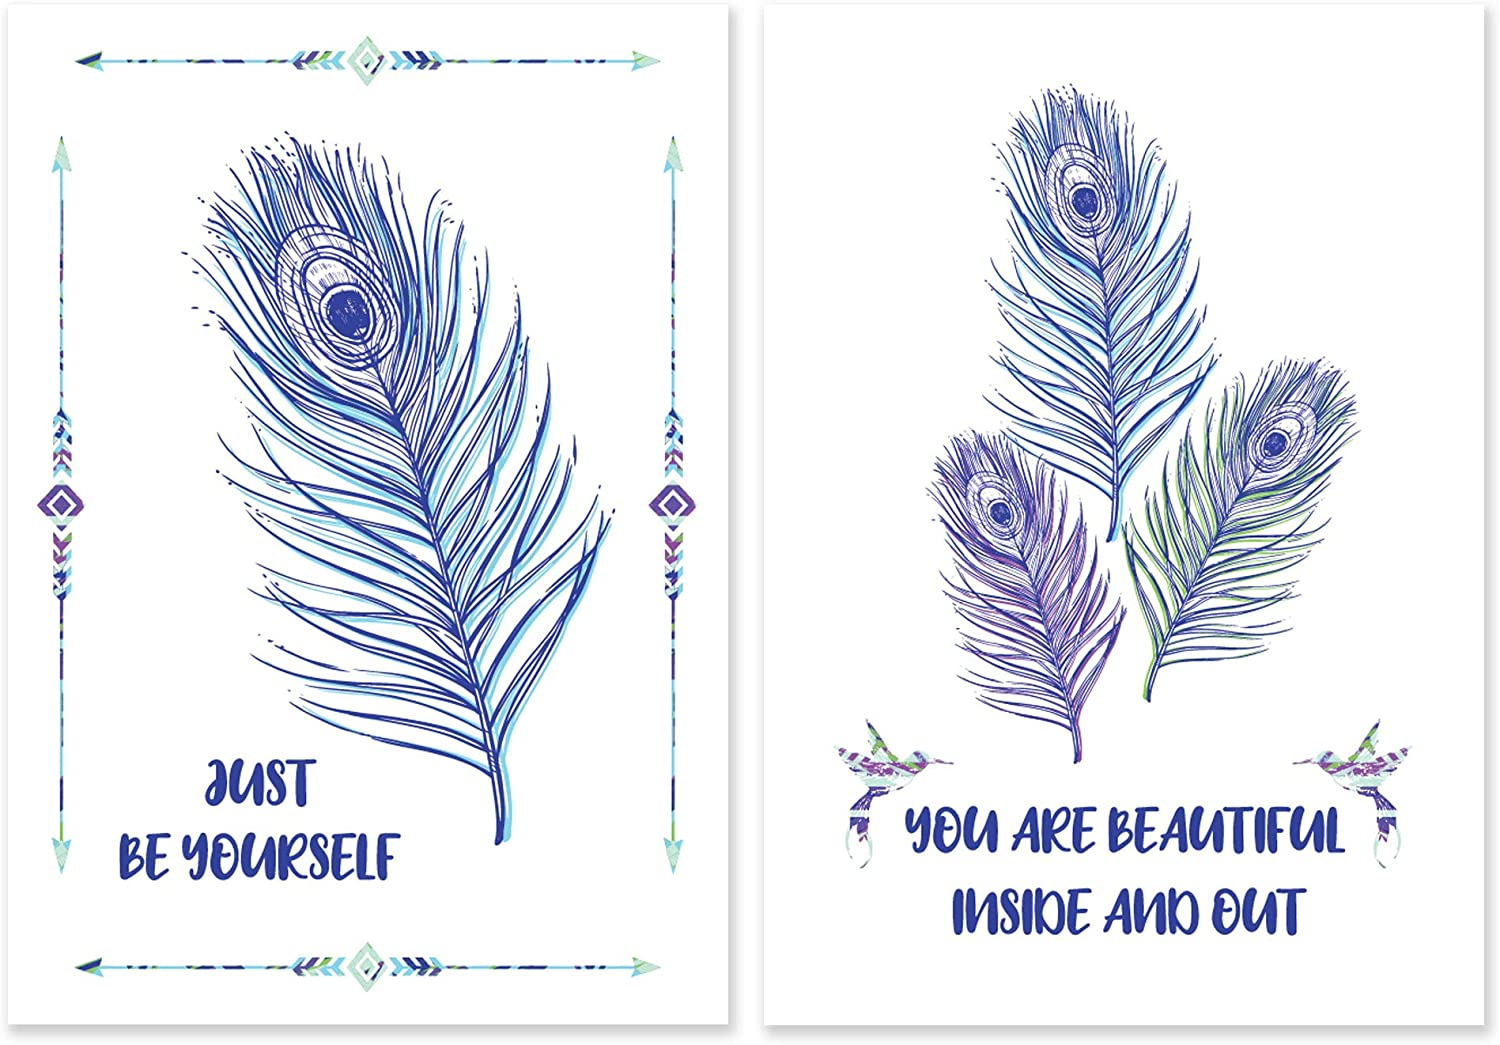 "SCENE: YOURSELF Peacock Decor, Peacock Wall Decor, Peacock Gifts, Peacock Wall Art, Peacock Bathroom Decor, 11.7"" x 16.5"", Unframed, Paper, Matte Lamination, Set of 2 Posters, Peacock"